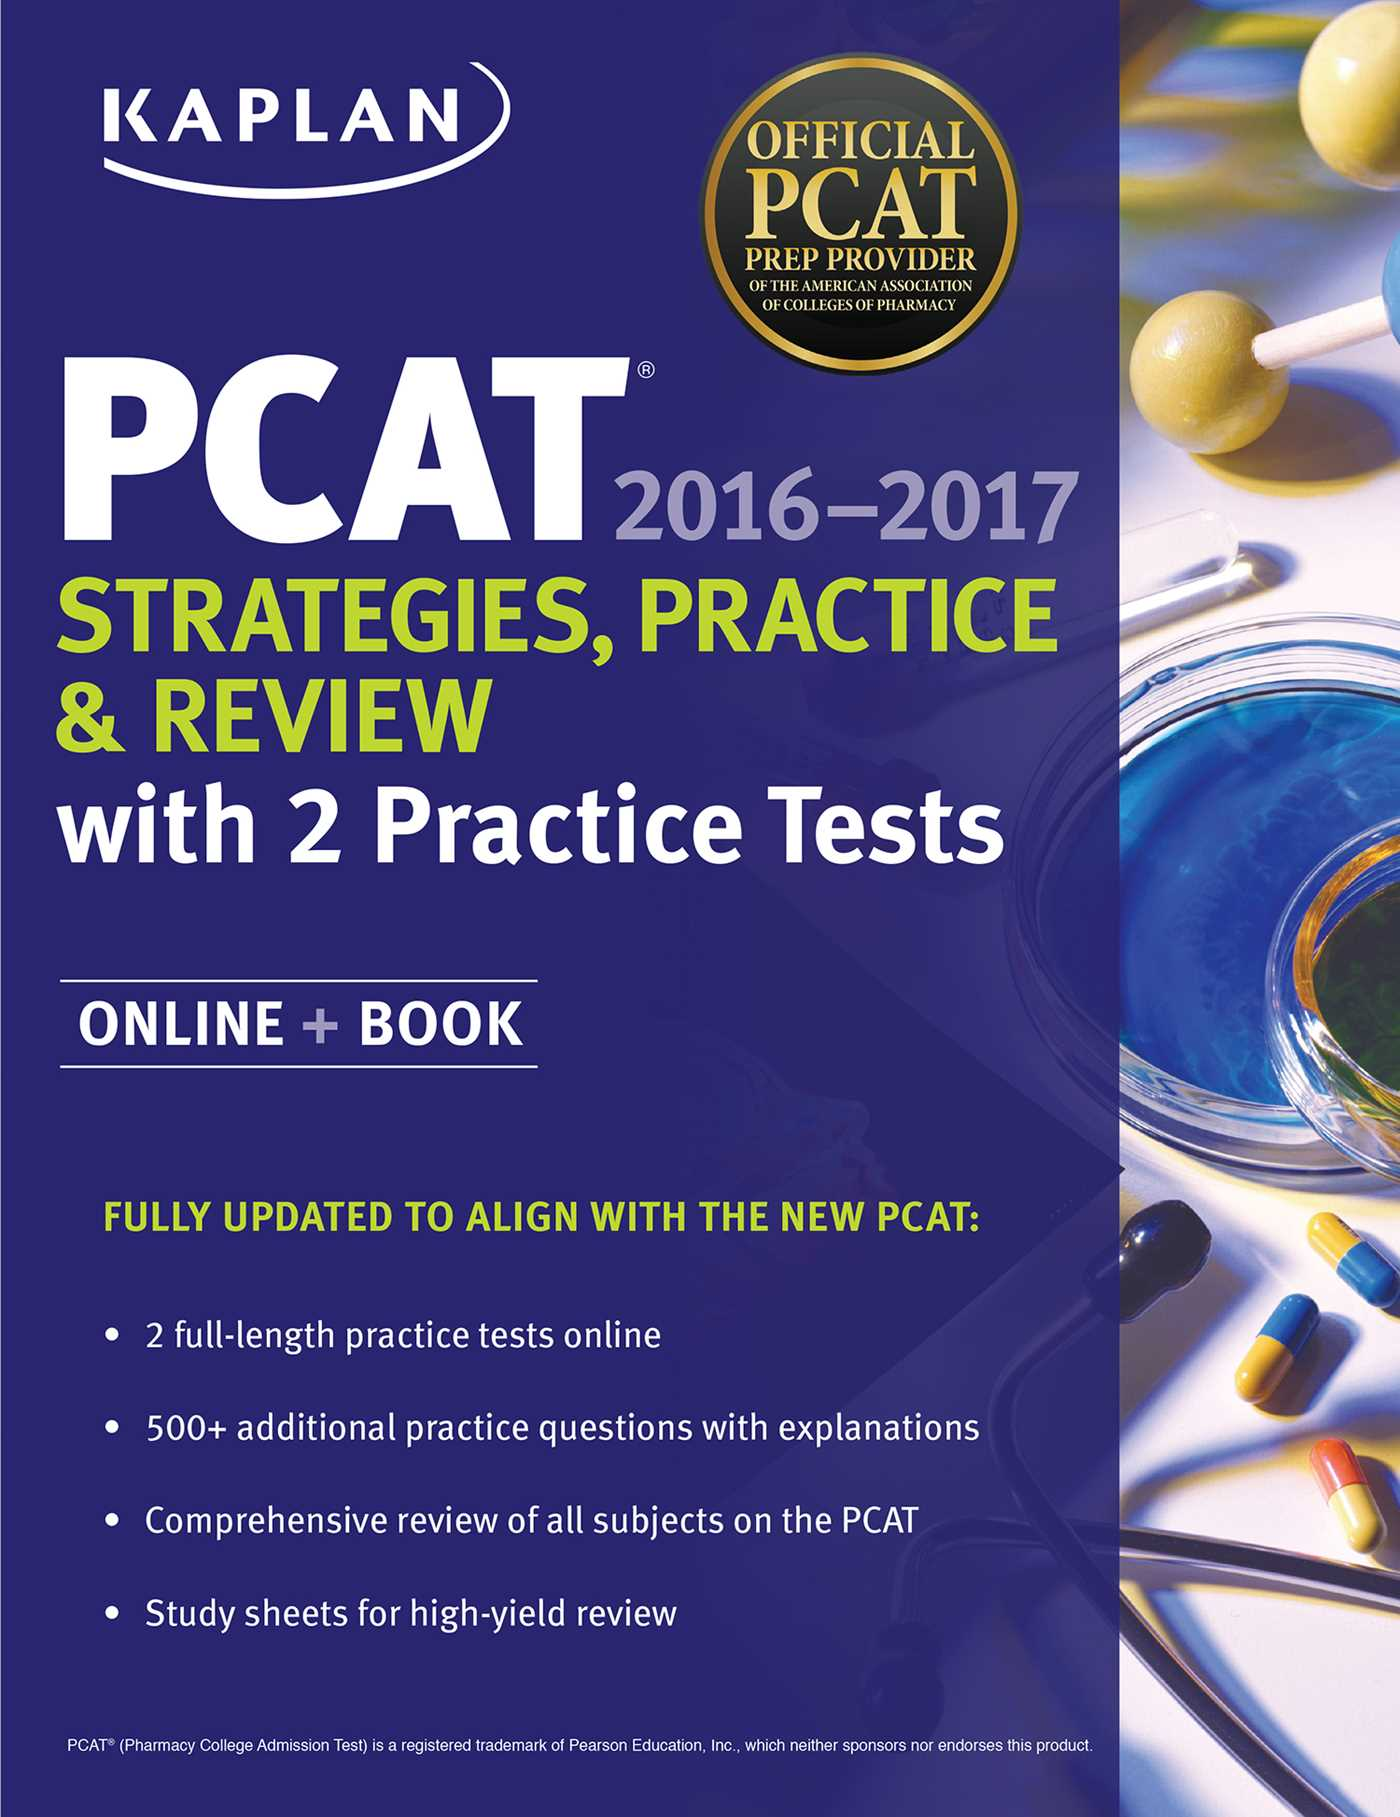 Kaplan Pcat Strategies Practice And Review With 2 Practice Tests Ebook By Kaplan